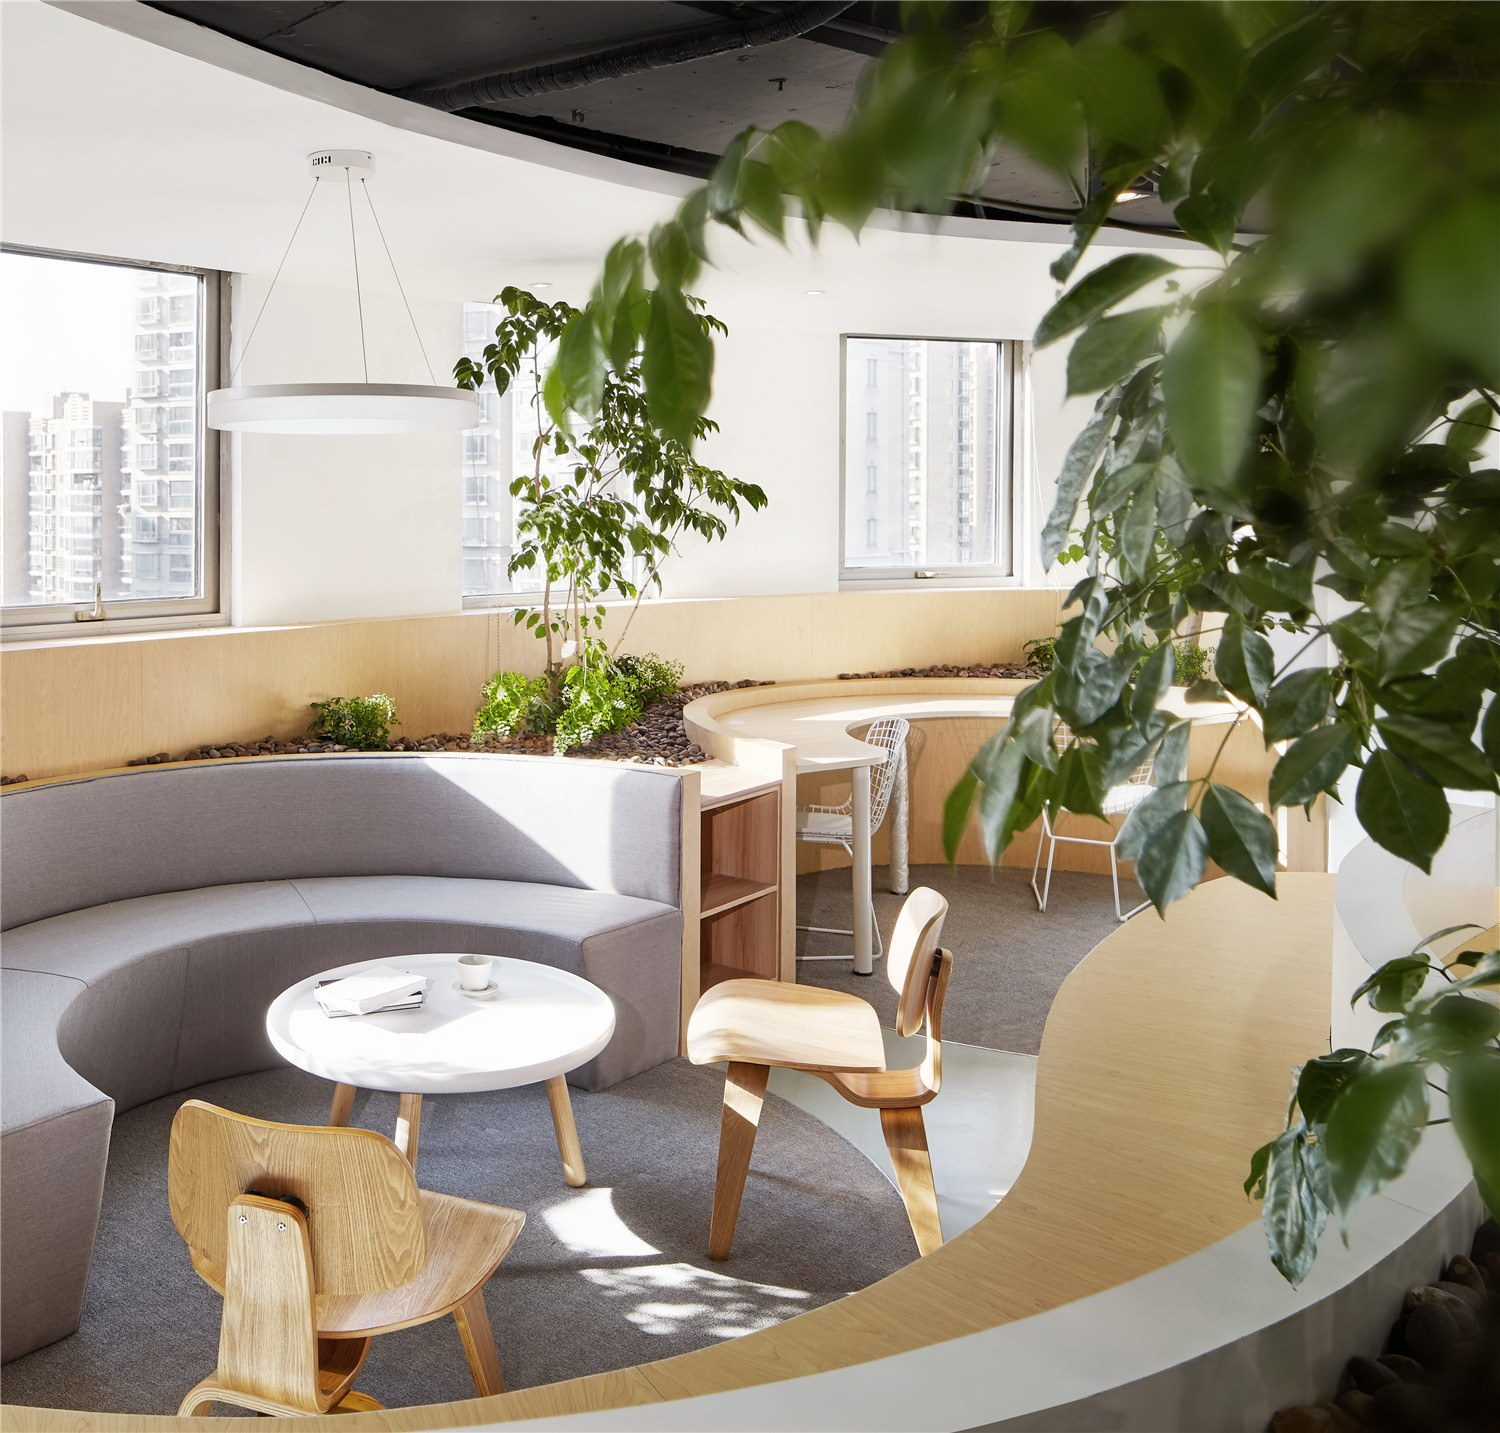 Office Reconstruction by Muxin Design